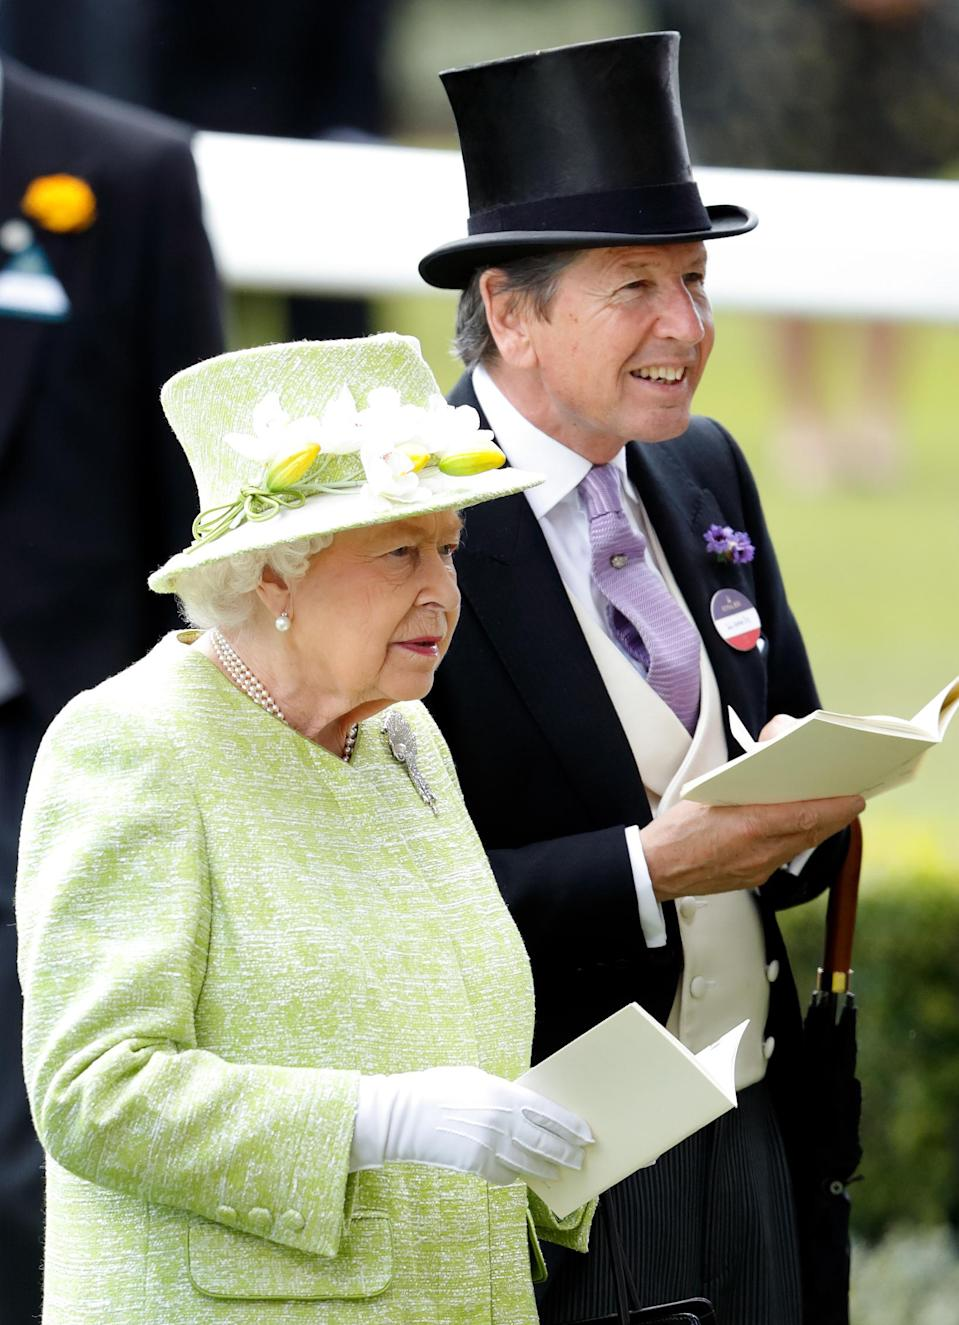 The Queen with John Warren at Royal Ascot in 2019. (Getty Images)